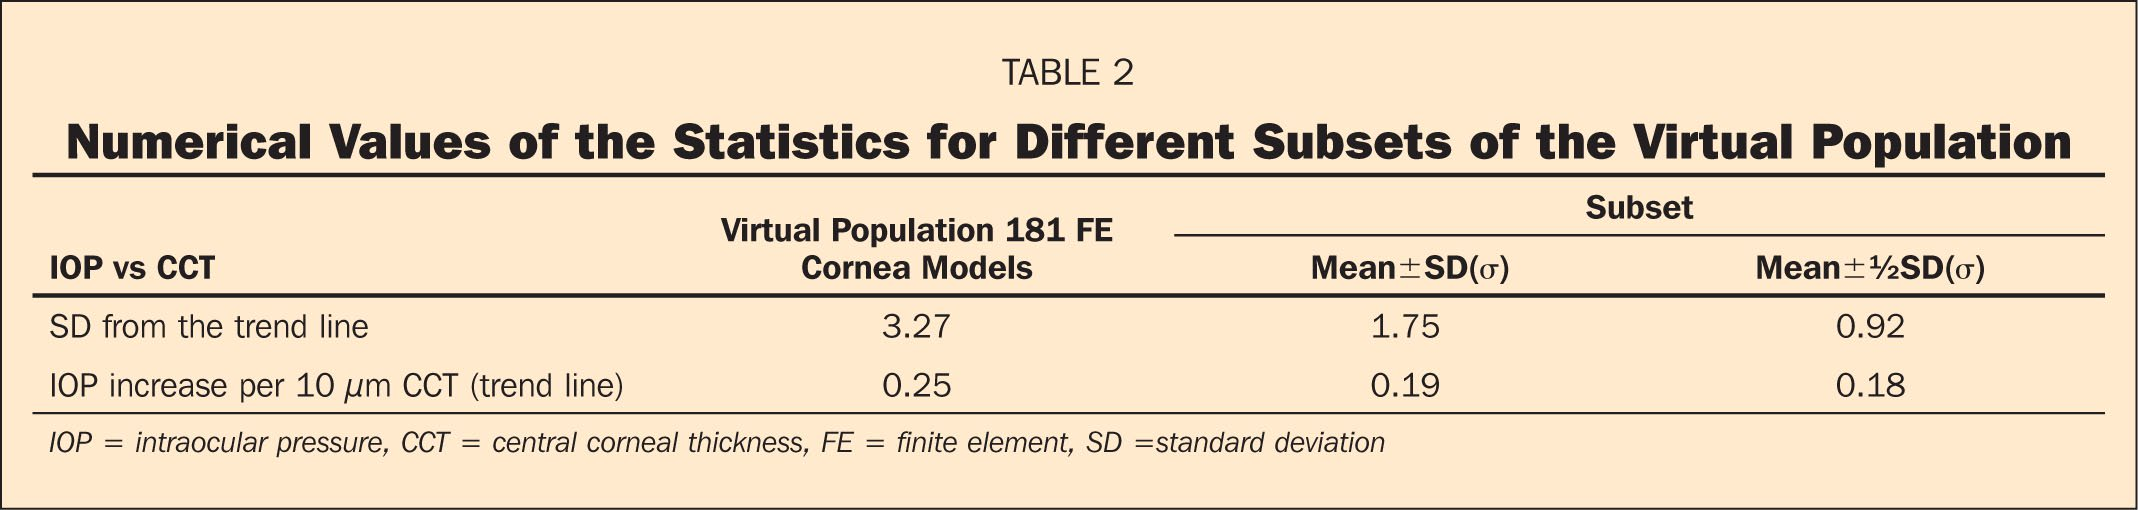 Numerical Values of the Statistics for Different Subsets of the Virtual Population